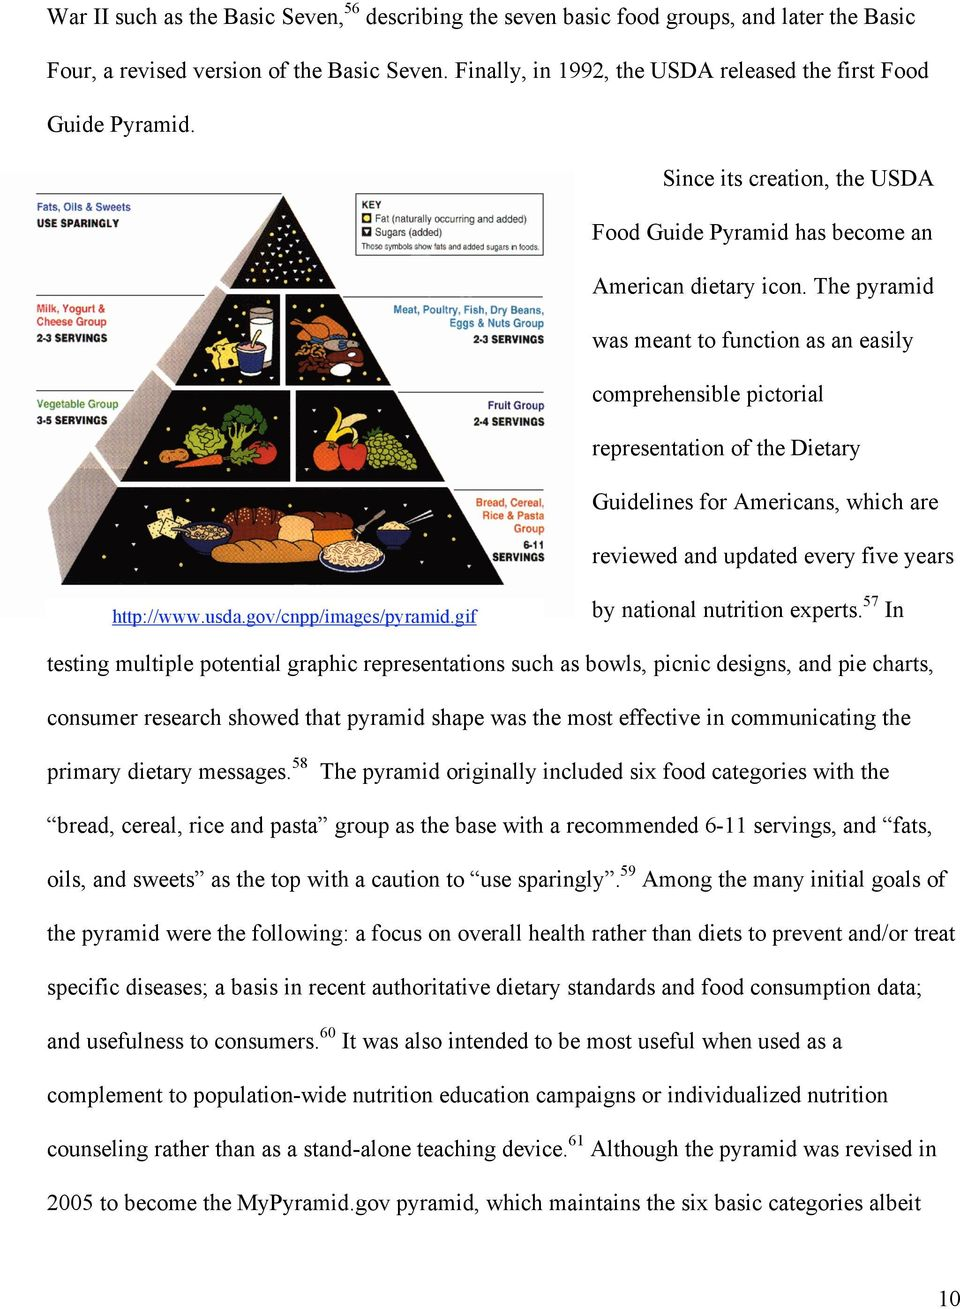 The pyramid was meant to function as an easily comprehensible pictorial representation of the Dietary Guidelines for Americans, which are reviewed and updated every five years http://www.usda.